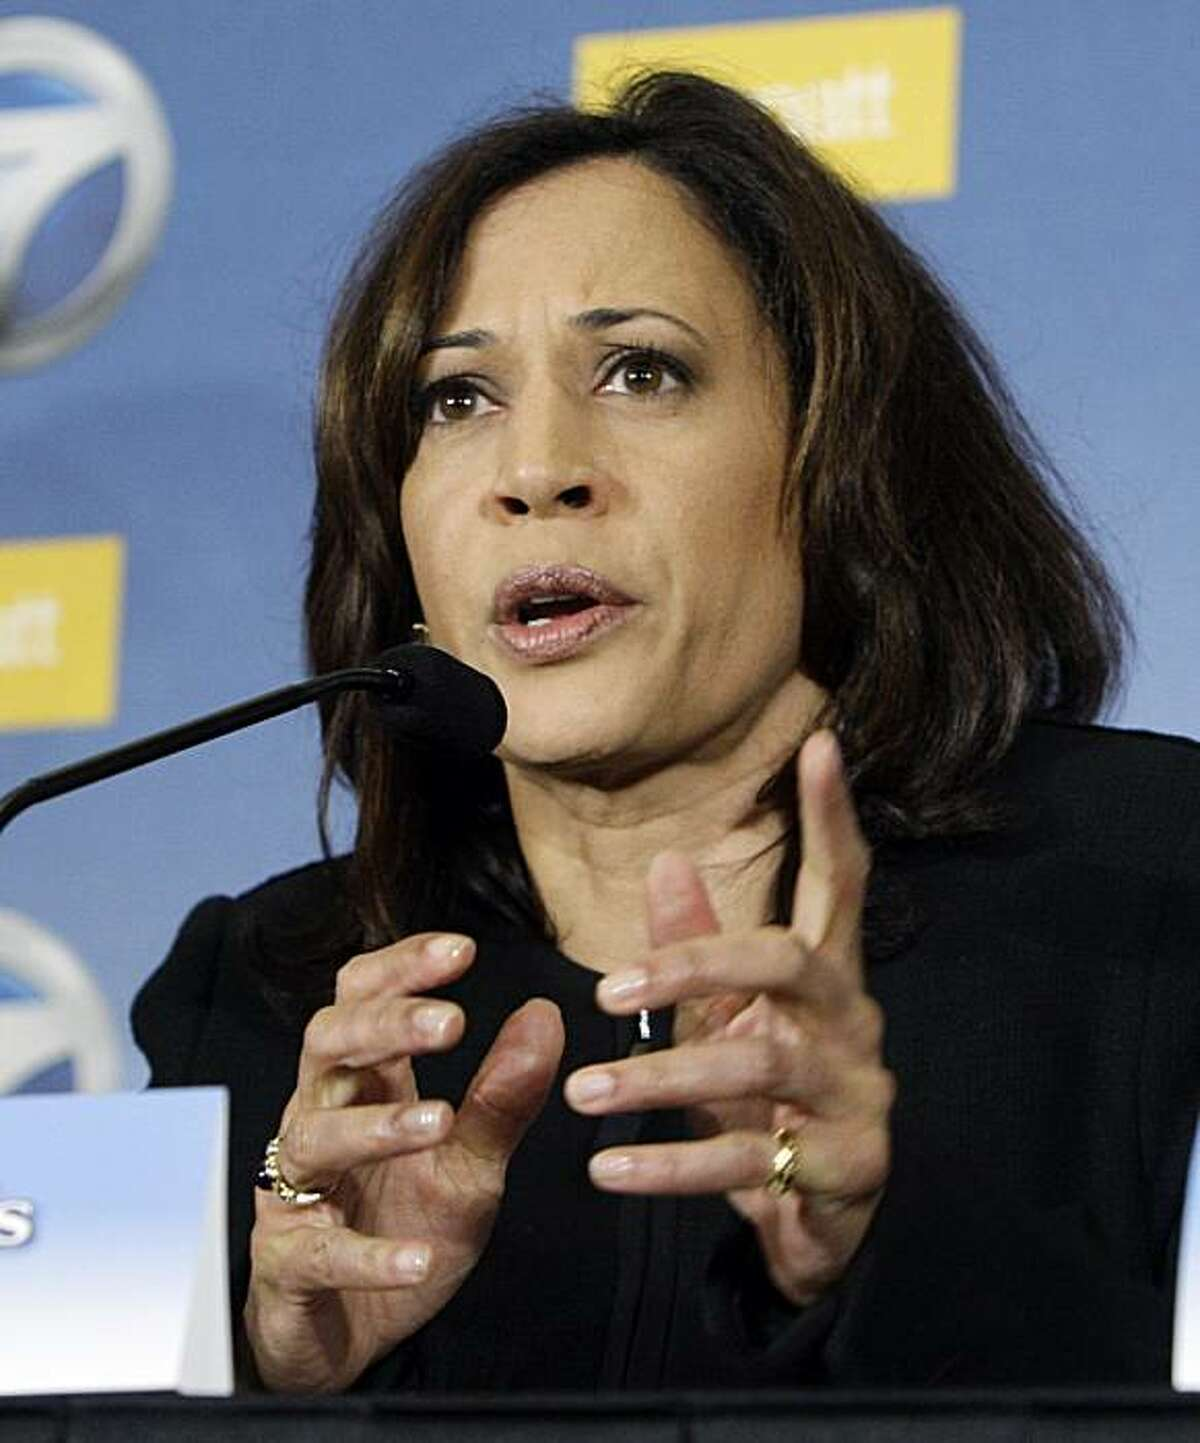 Kamala Harris takes part in a debate among the Democratic candidates for California Attorney General, at the Milken Institute in Santa Monica, Calif., Tuesday, May 18, 2010.